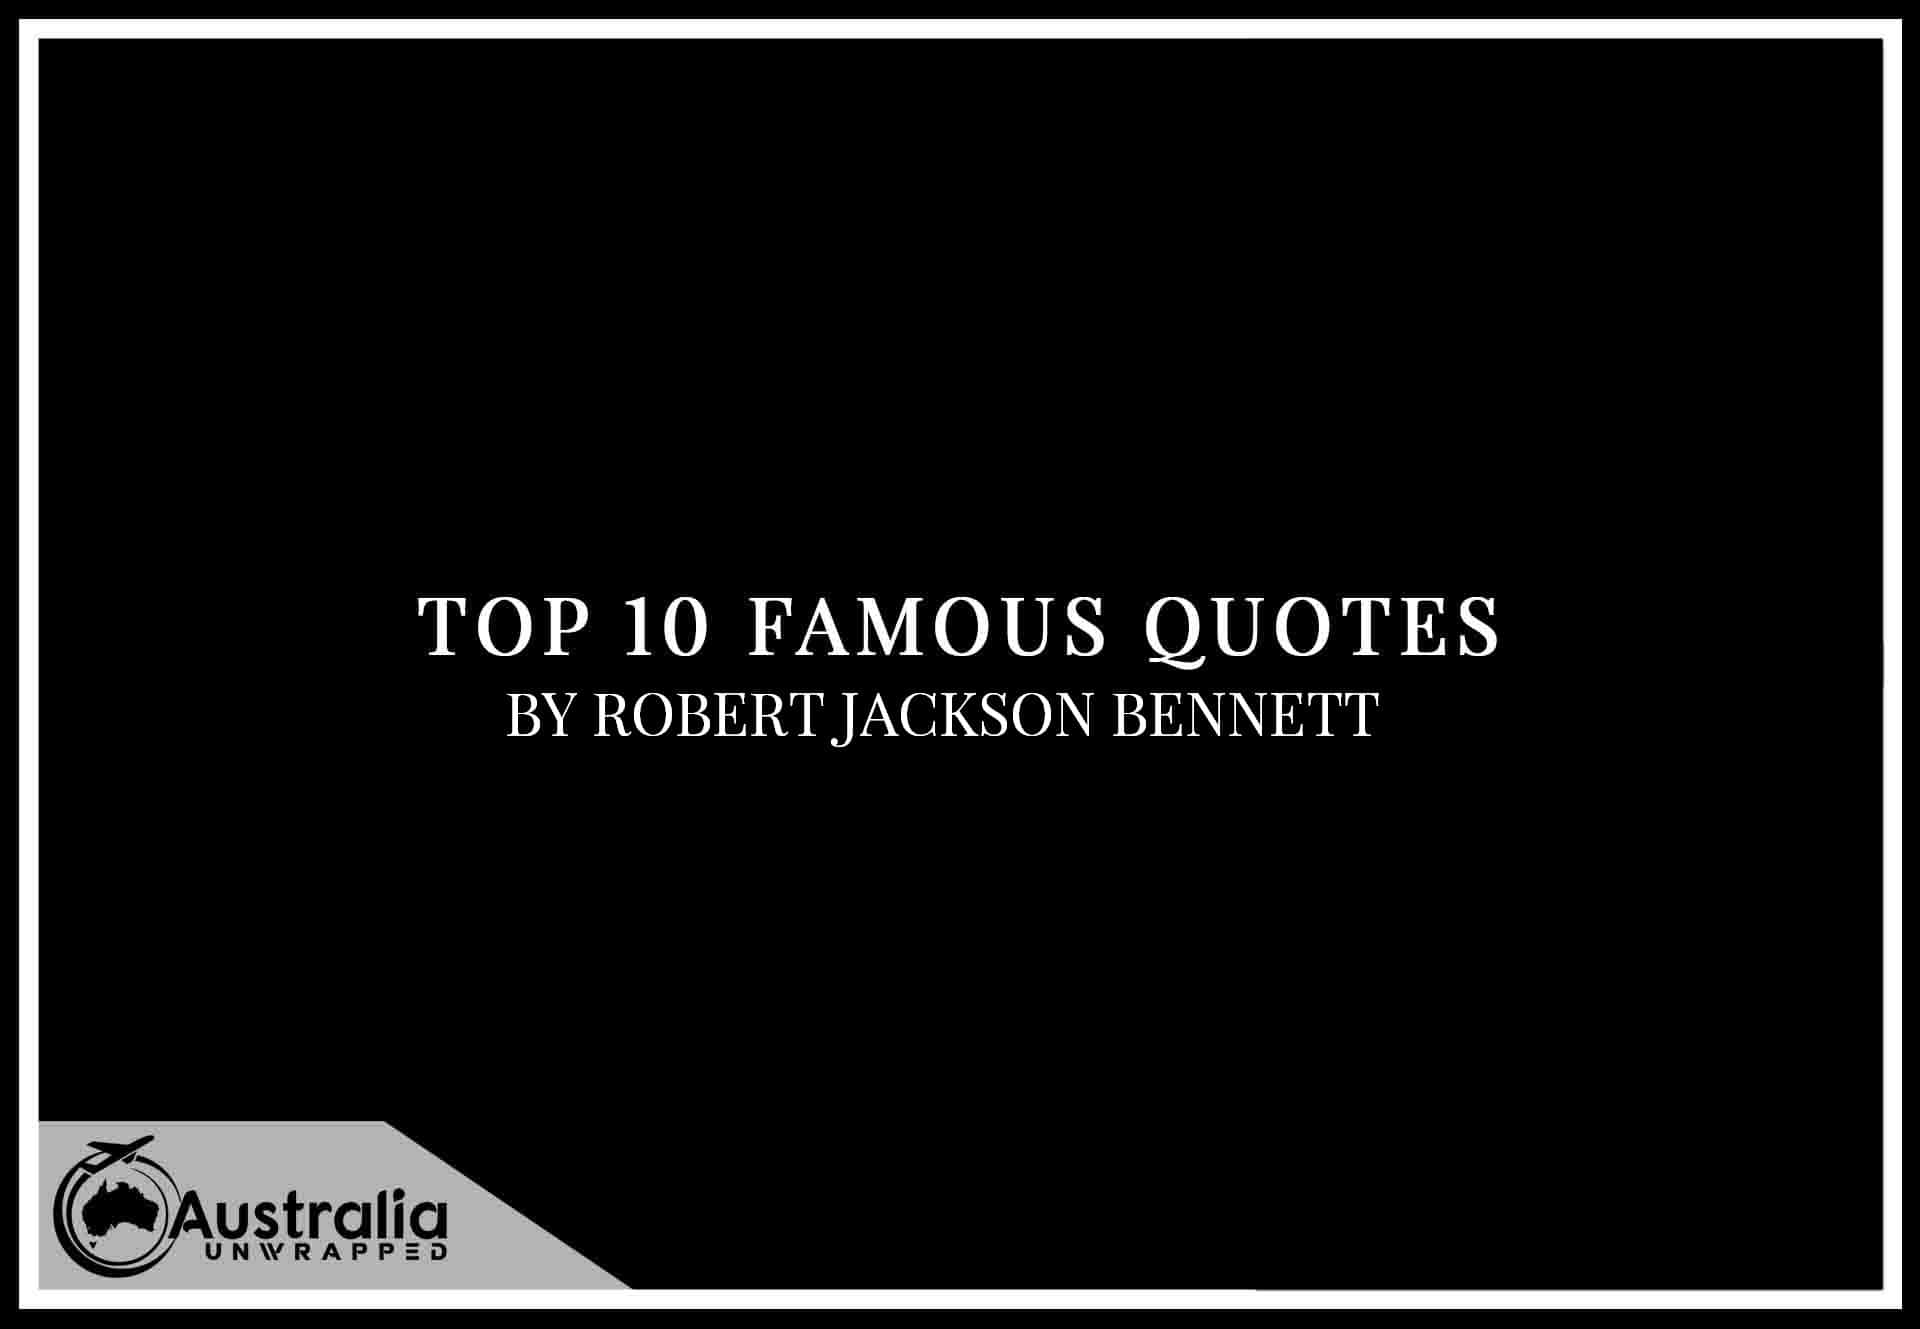 Top 10 Famous Quotes by Author Robert Jackson Bennett